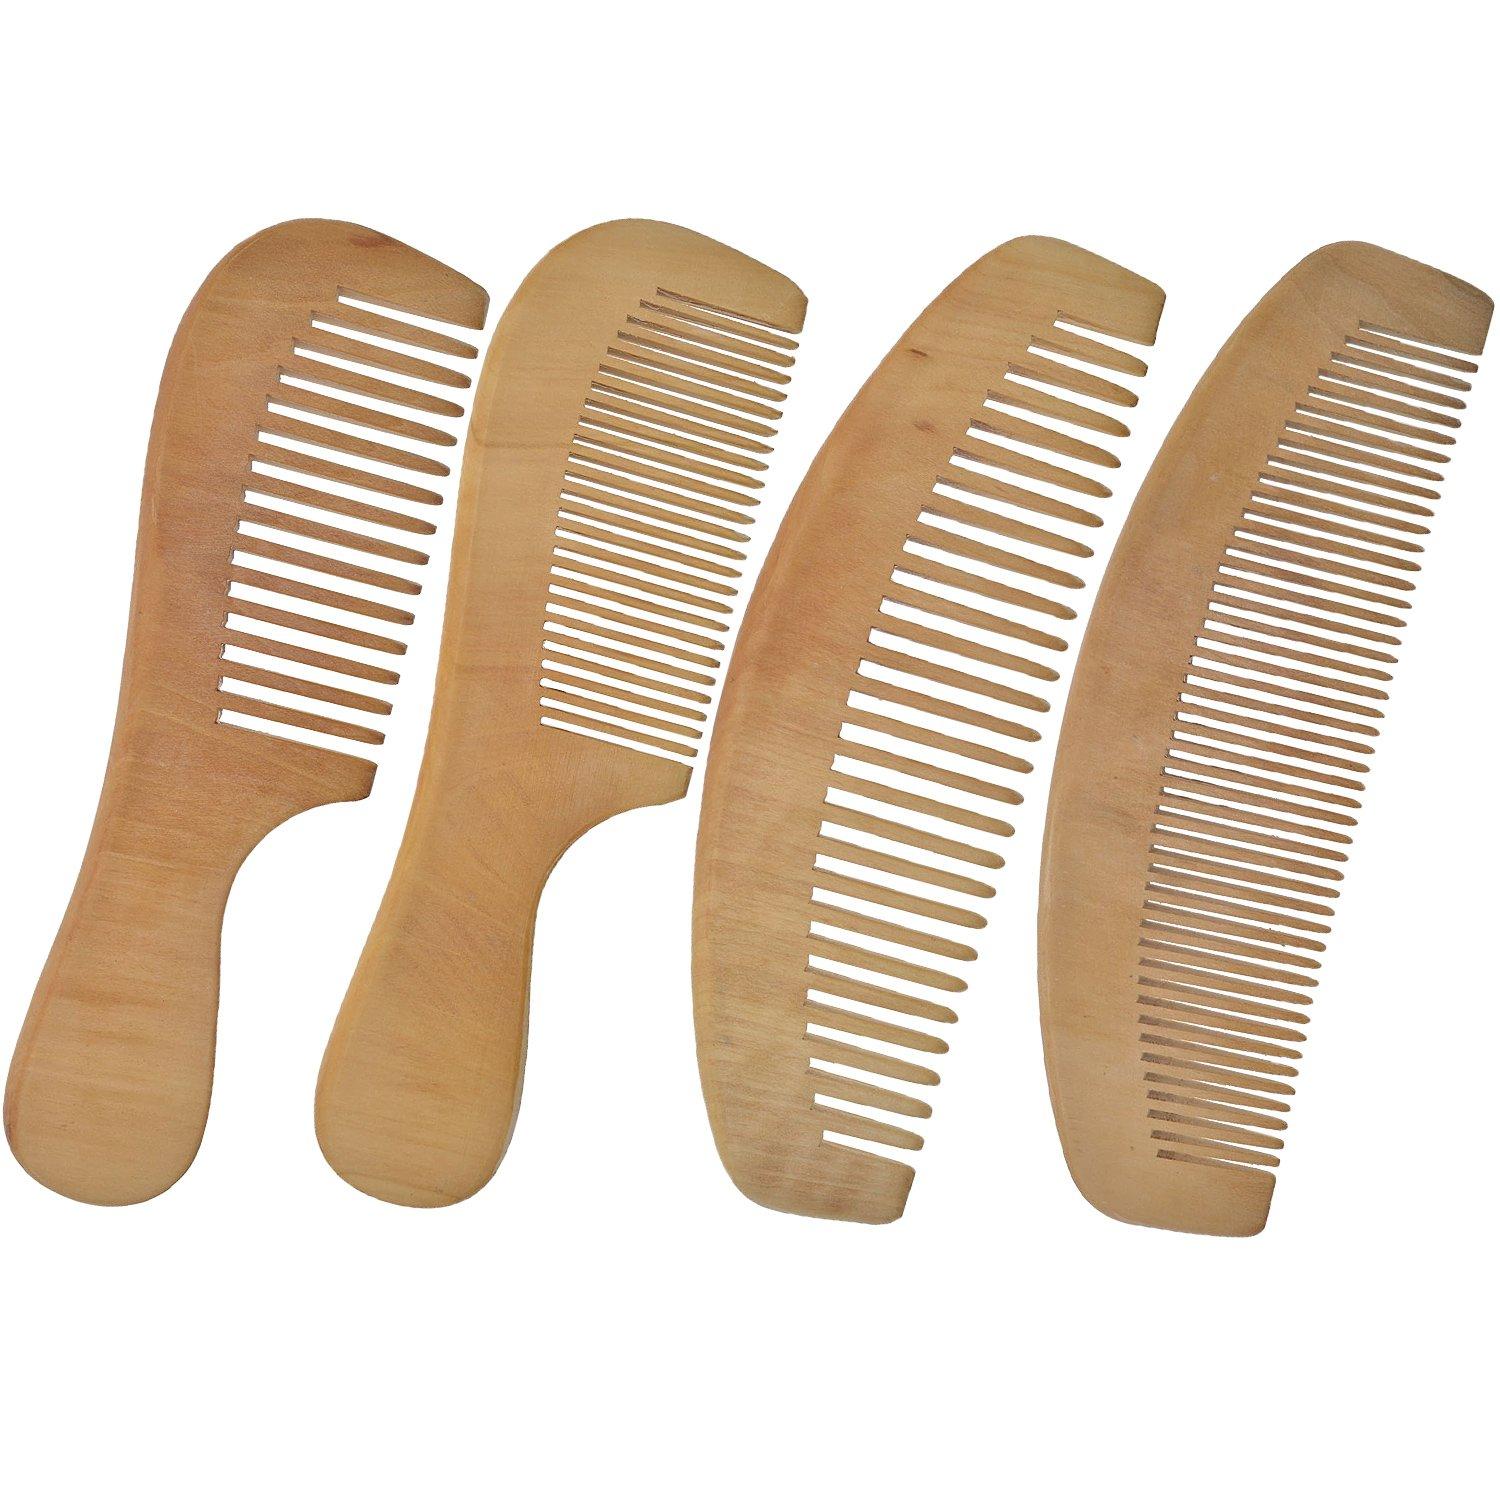 LCLHB 4PCS Natural Wooden Wide Tooth Beard and Hair Combs Set For Men and Women (6.5-7 Inch Length) by LCLHB